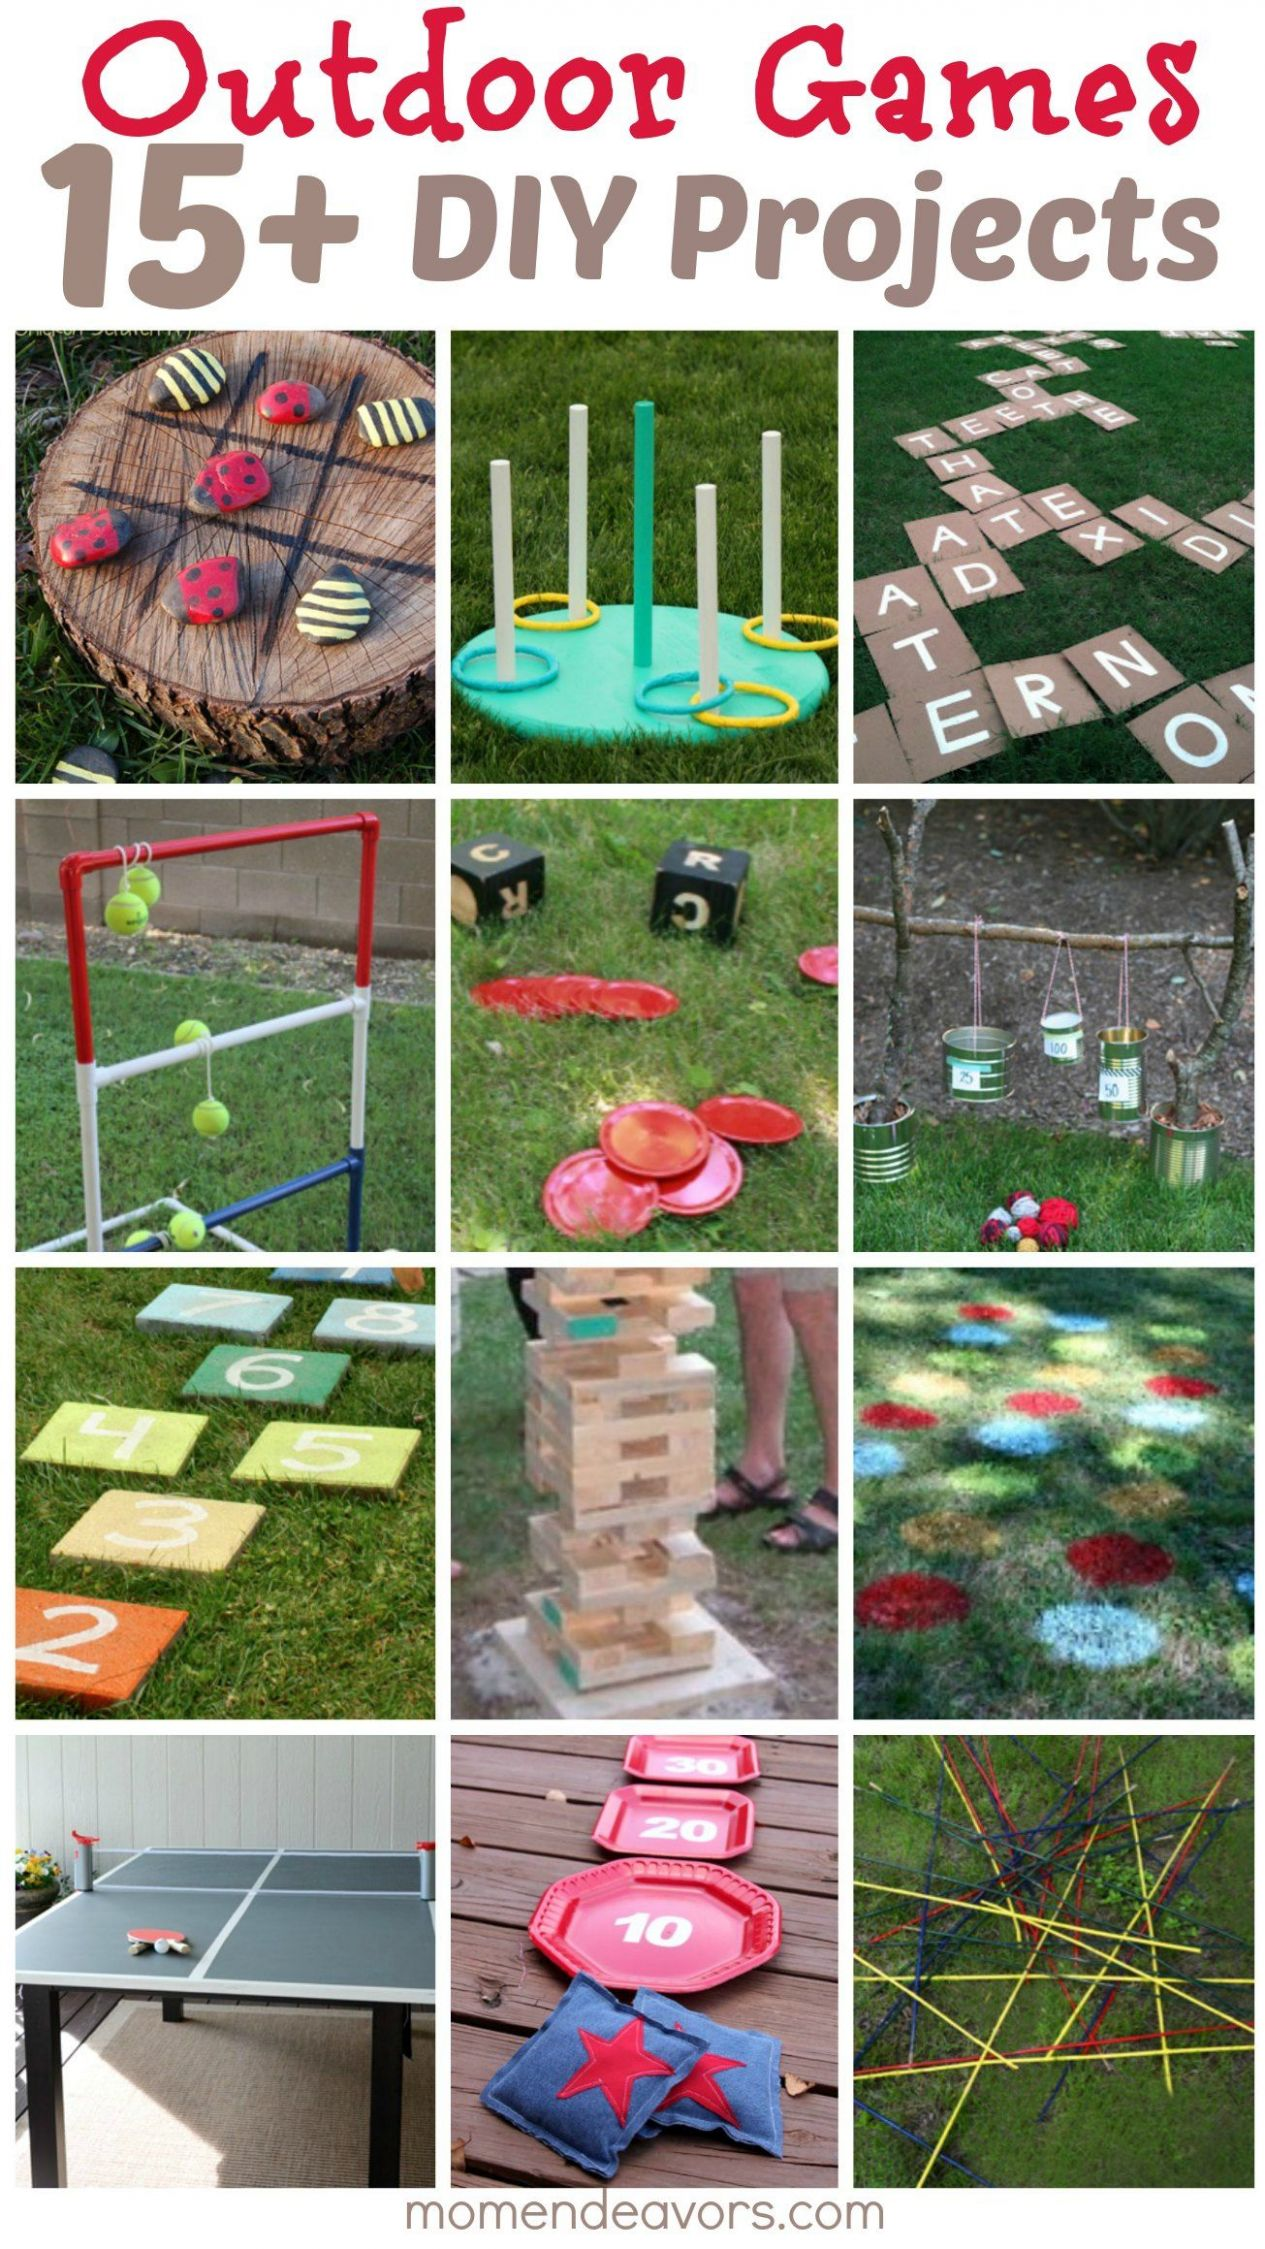 DIY Outdoor Games — 8+ Awesome Project Ideas for Backyard Fun ...